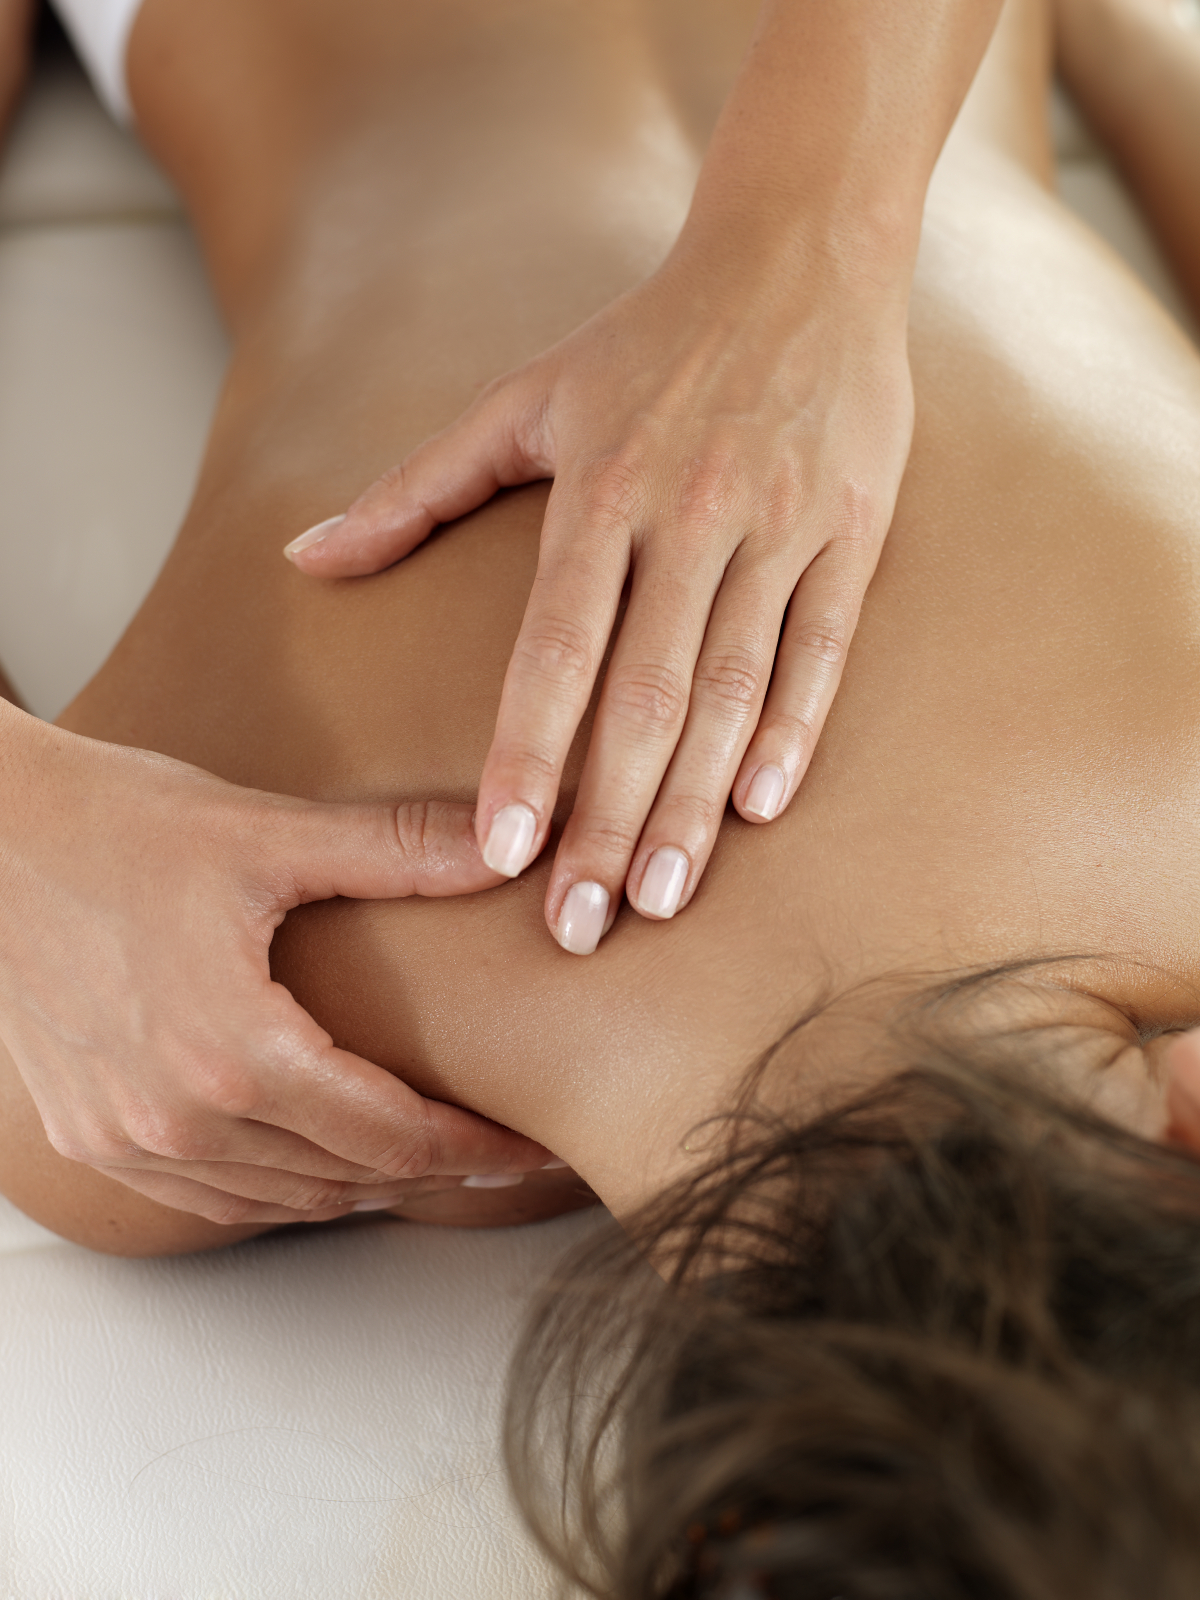 Massage Therapy in Las Vegas, NV, we bring the spa to you!